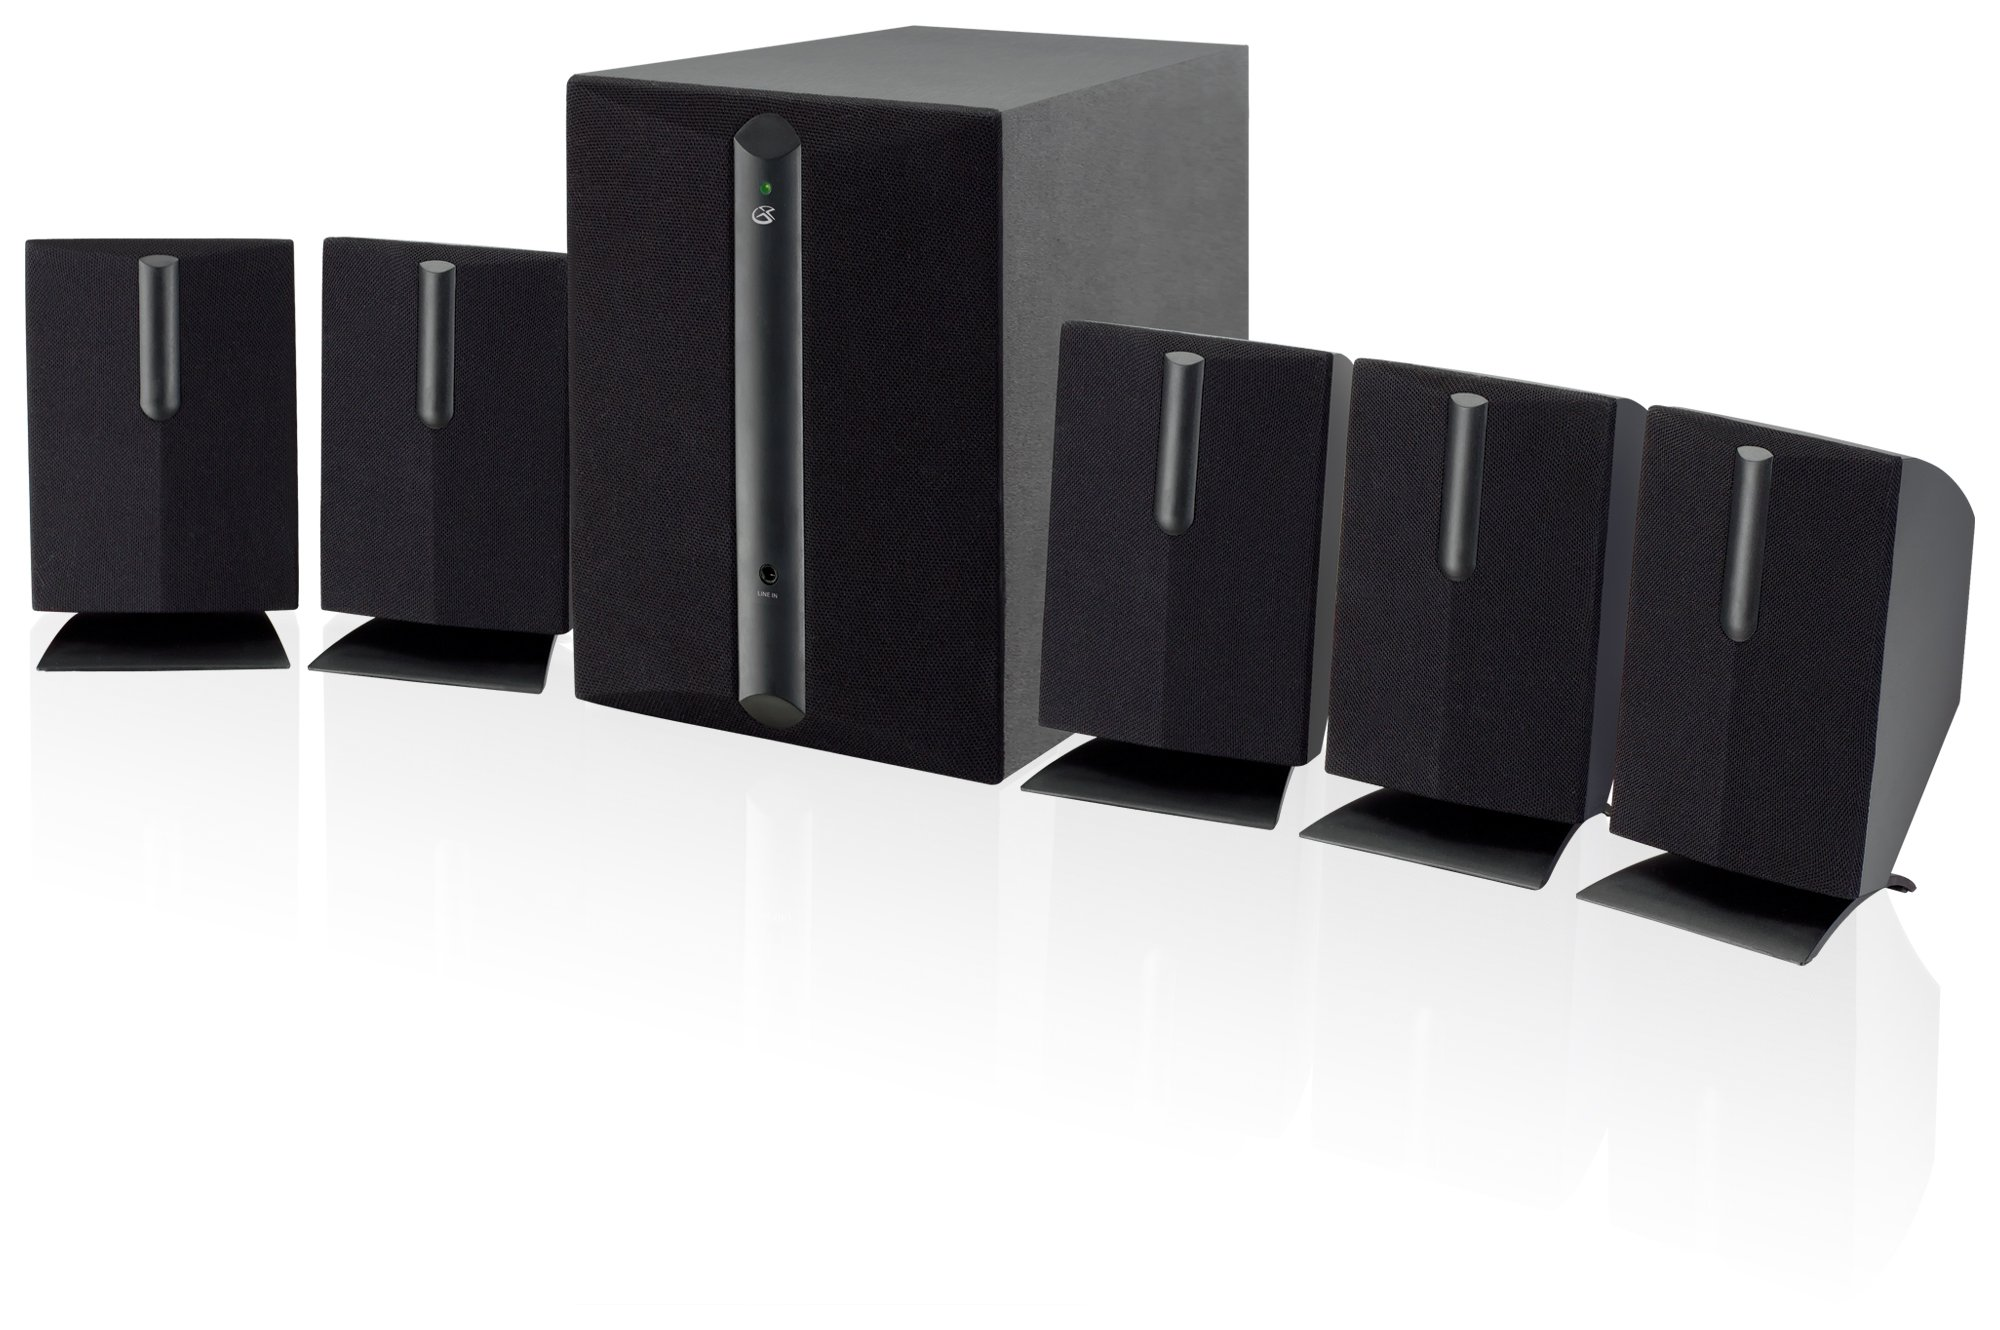 GPX HT050B 5.1 Channel Home Theater Speaker System (Black) by GPX